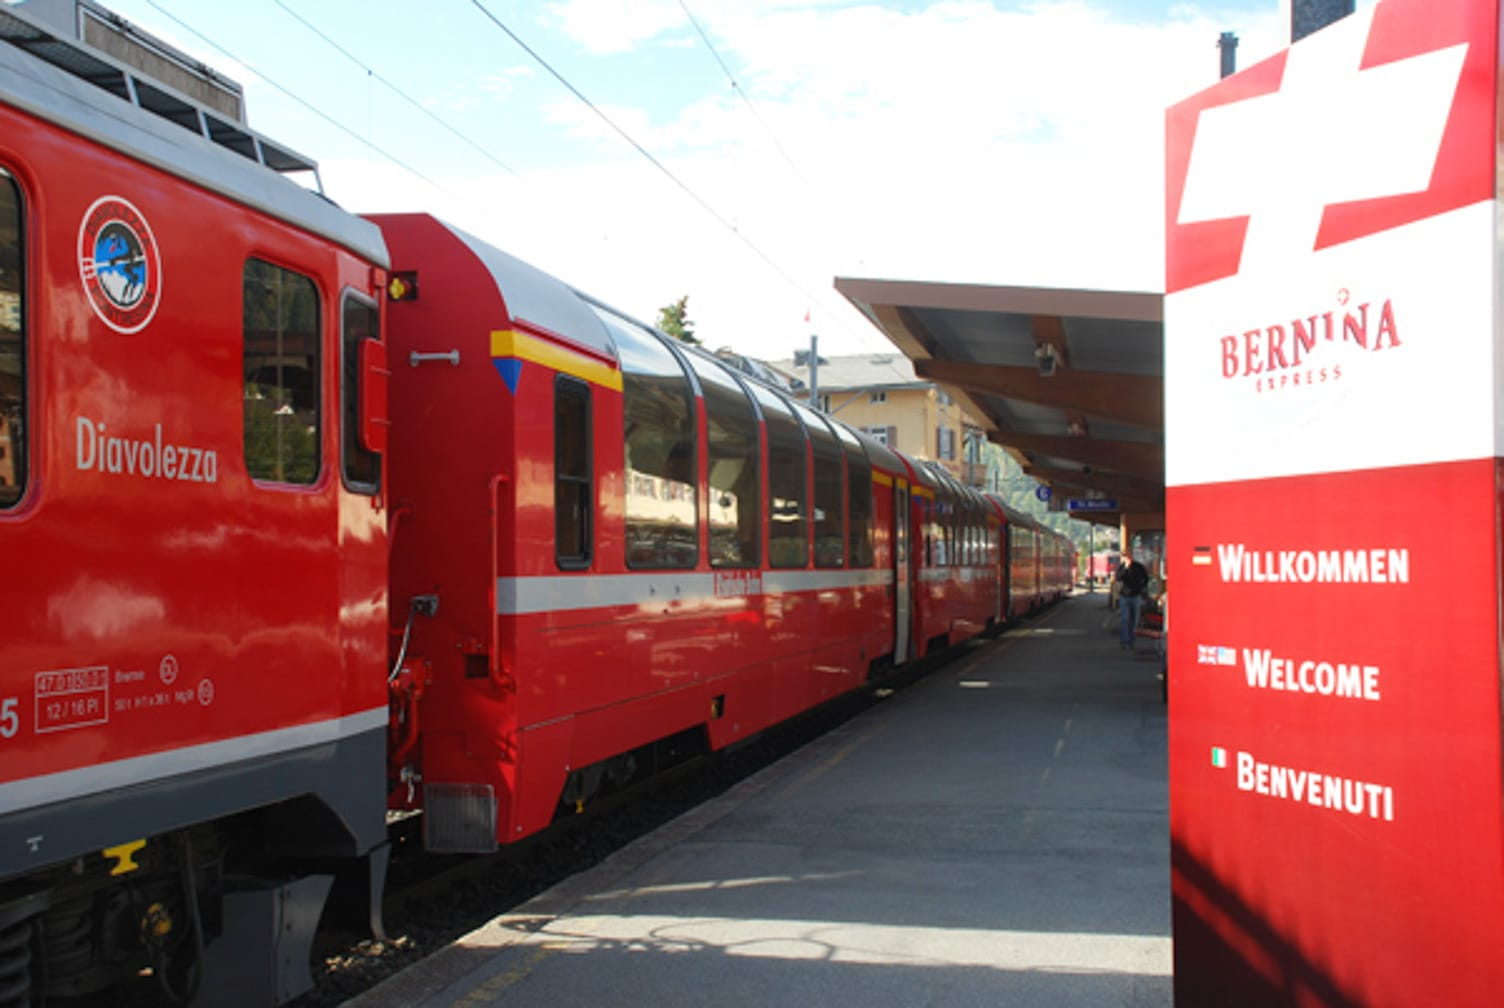 Two red trains